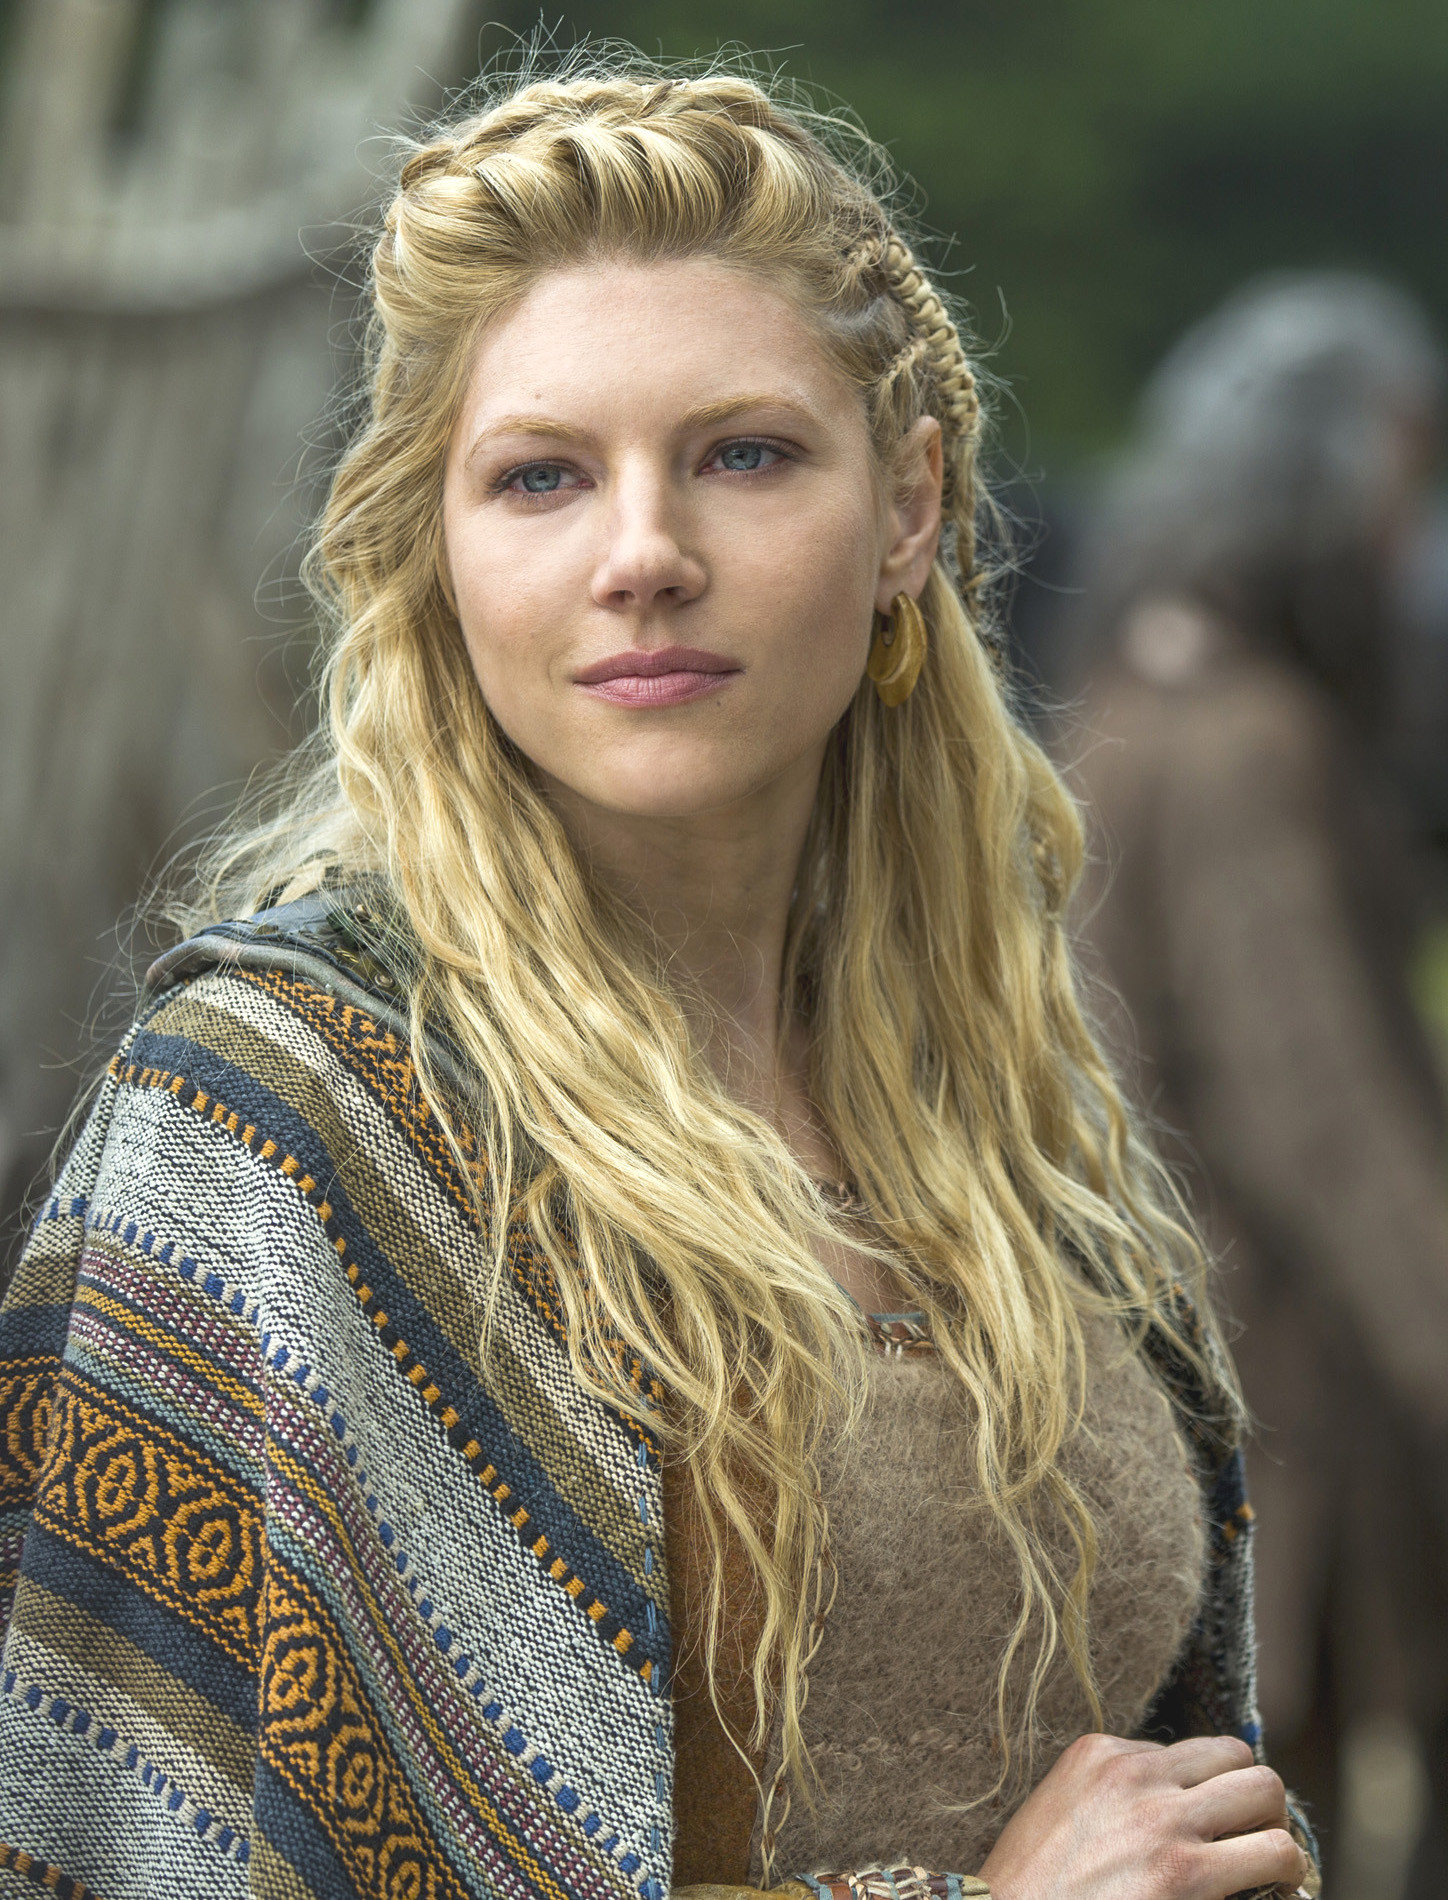 Best ideas about Female Viking Hairstyles . Save or Pin Katheryn Winnick Lagertha's Hairstyle in Vikings – StrayHair Now.